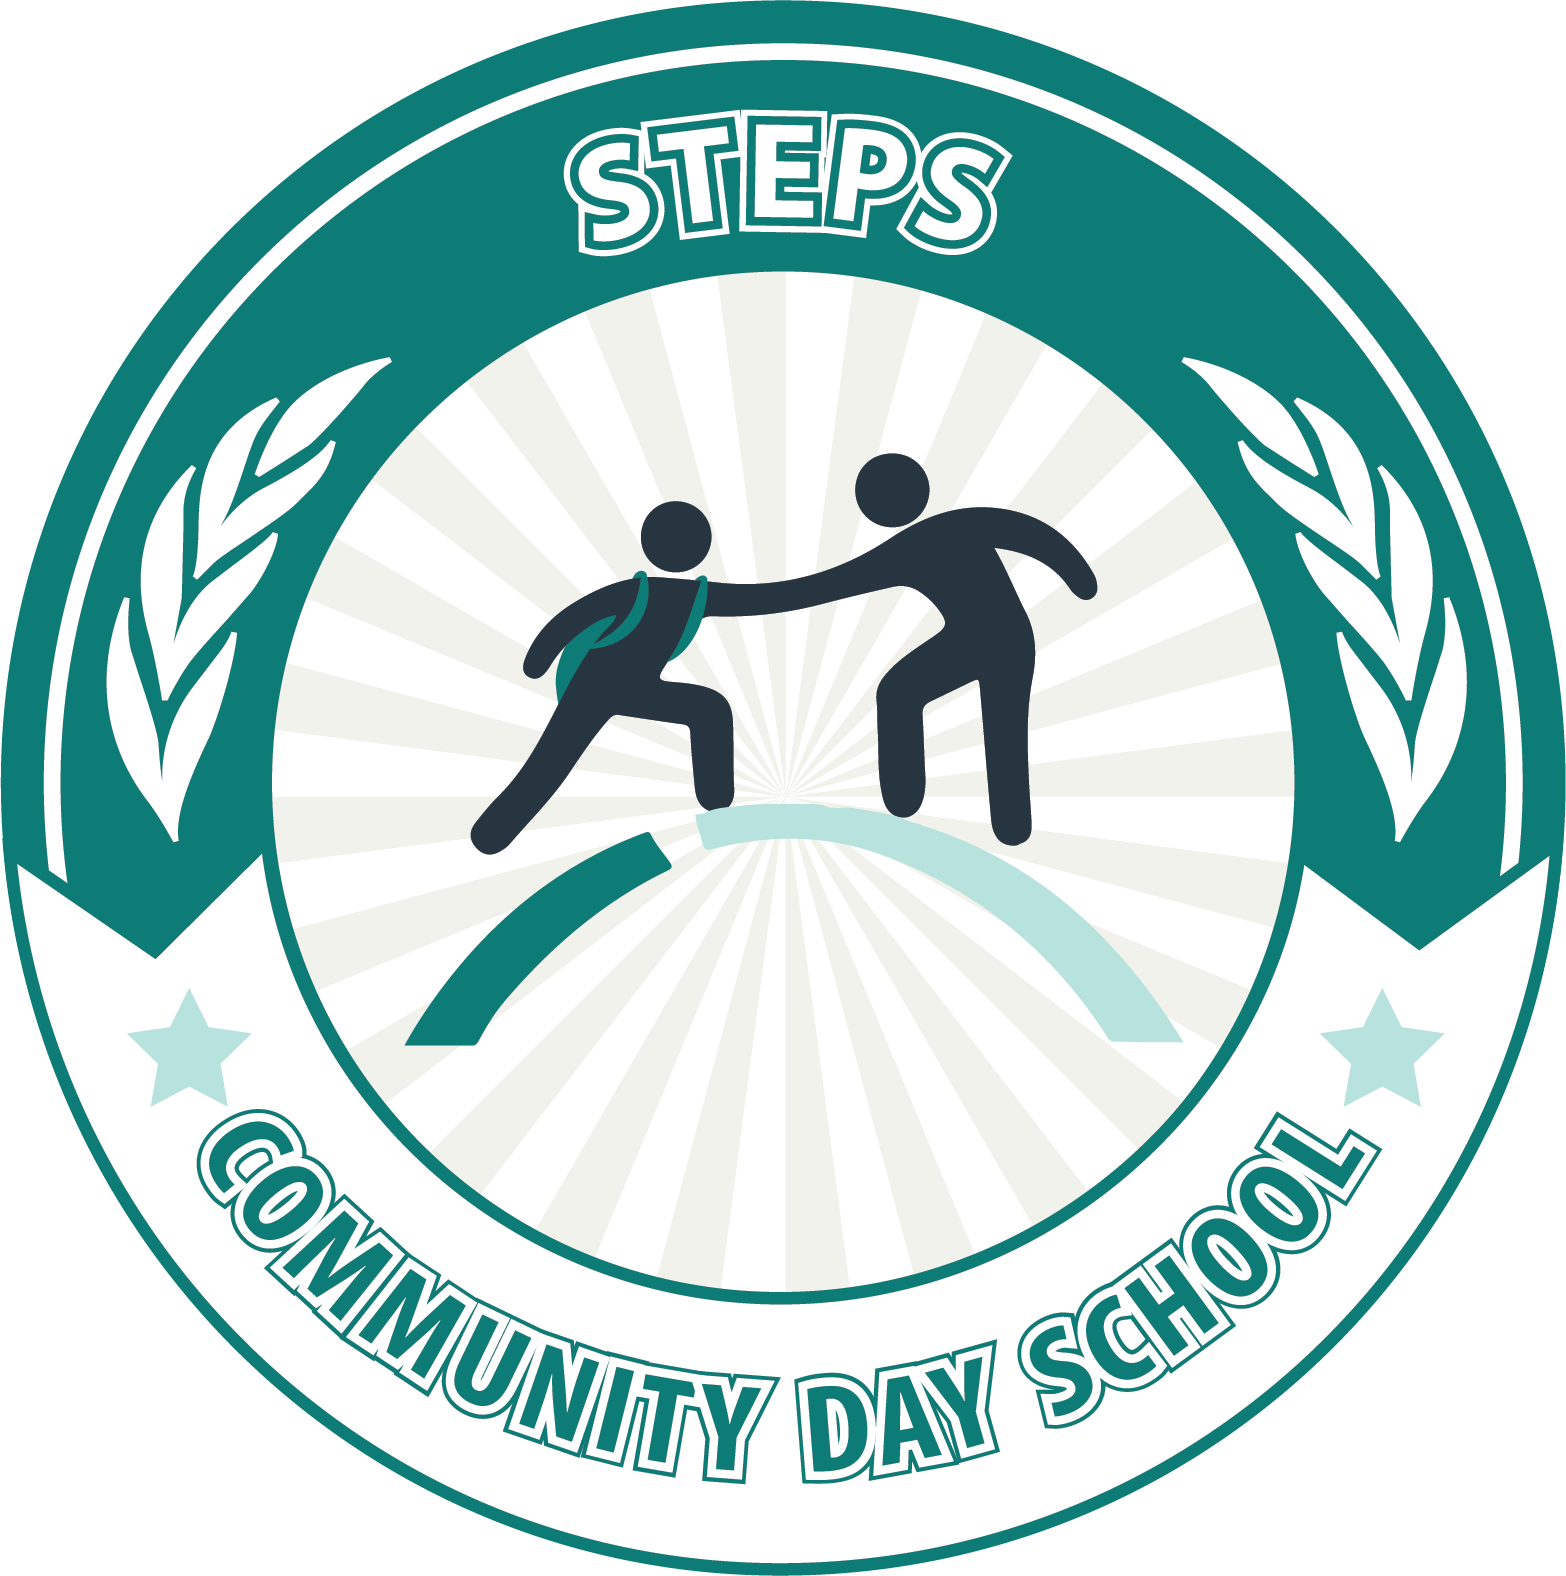 STEPS Community Day School